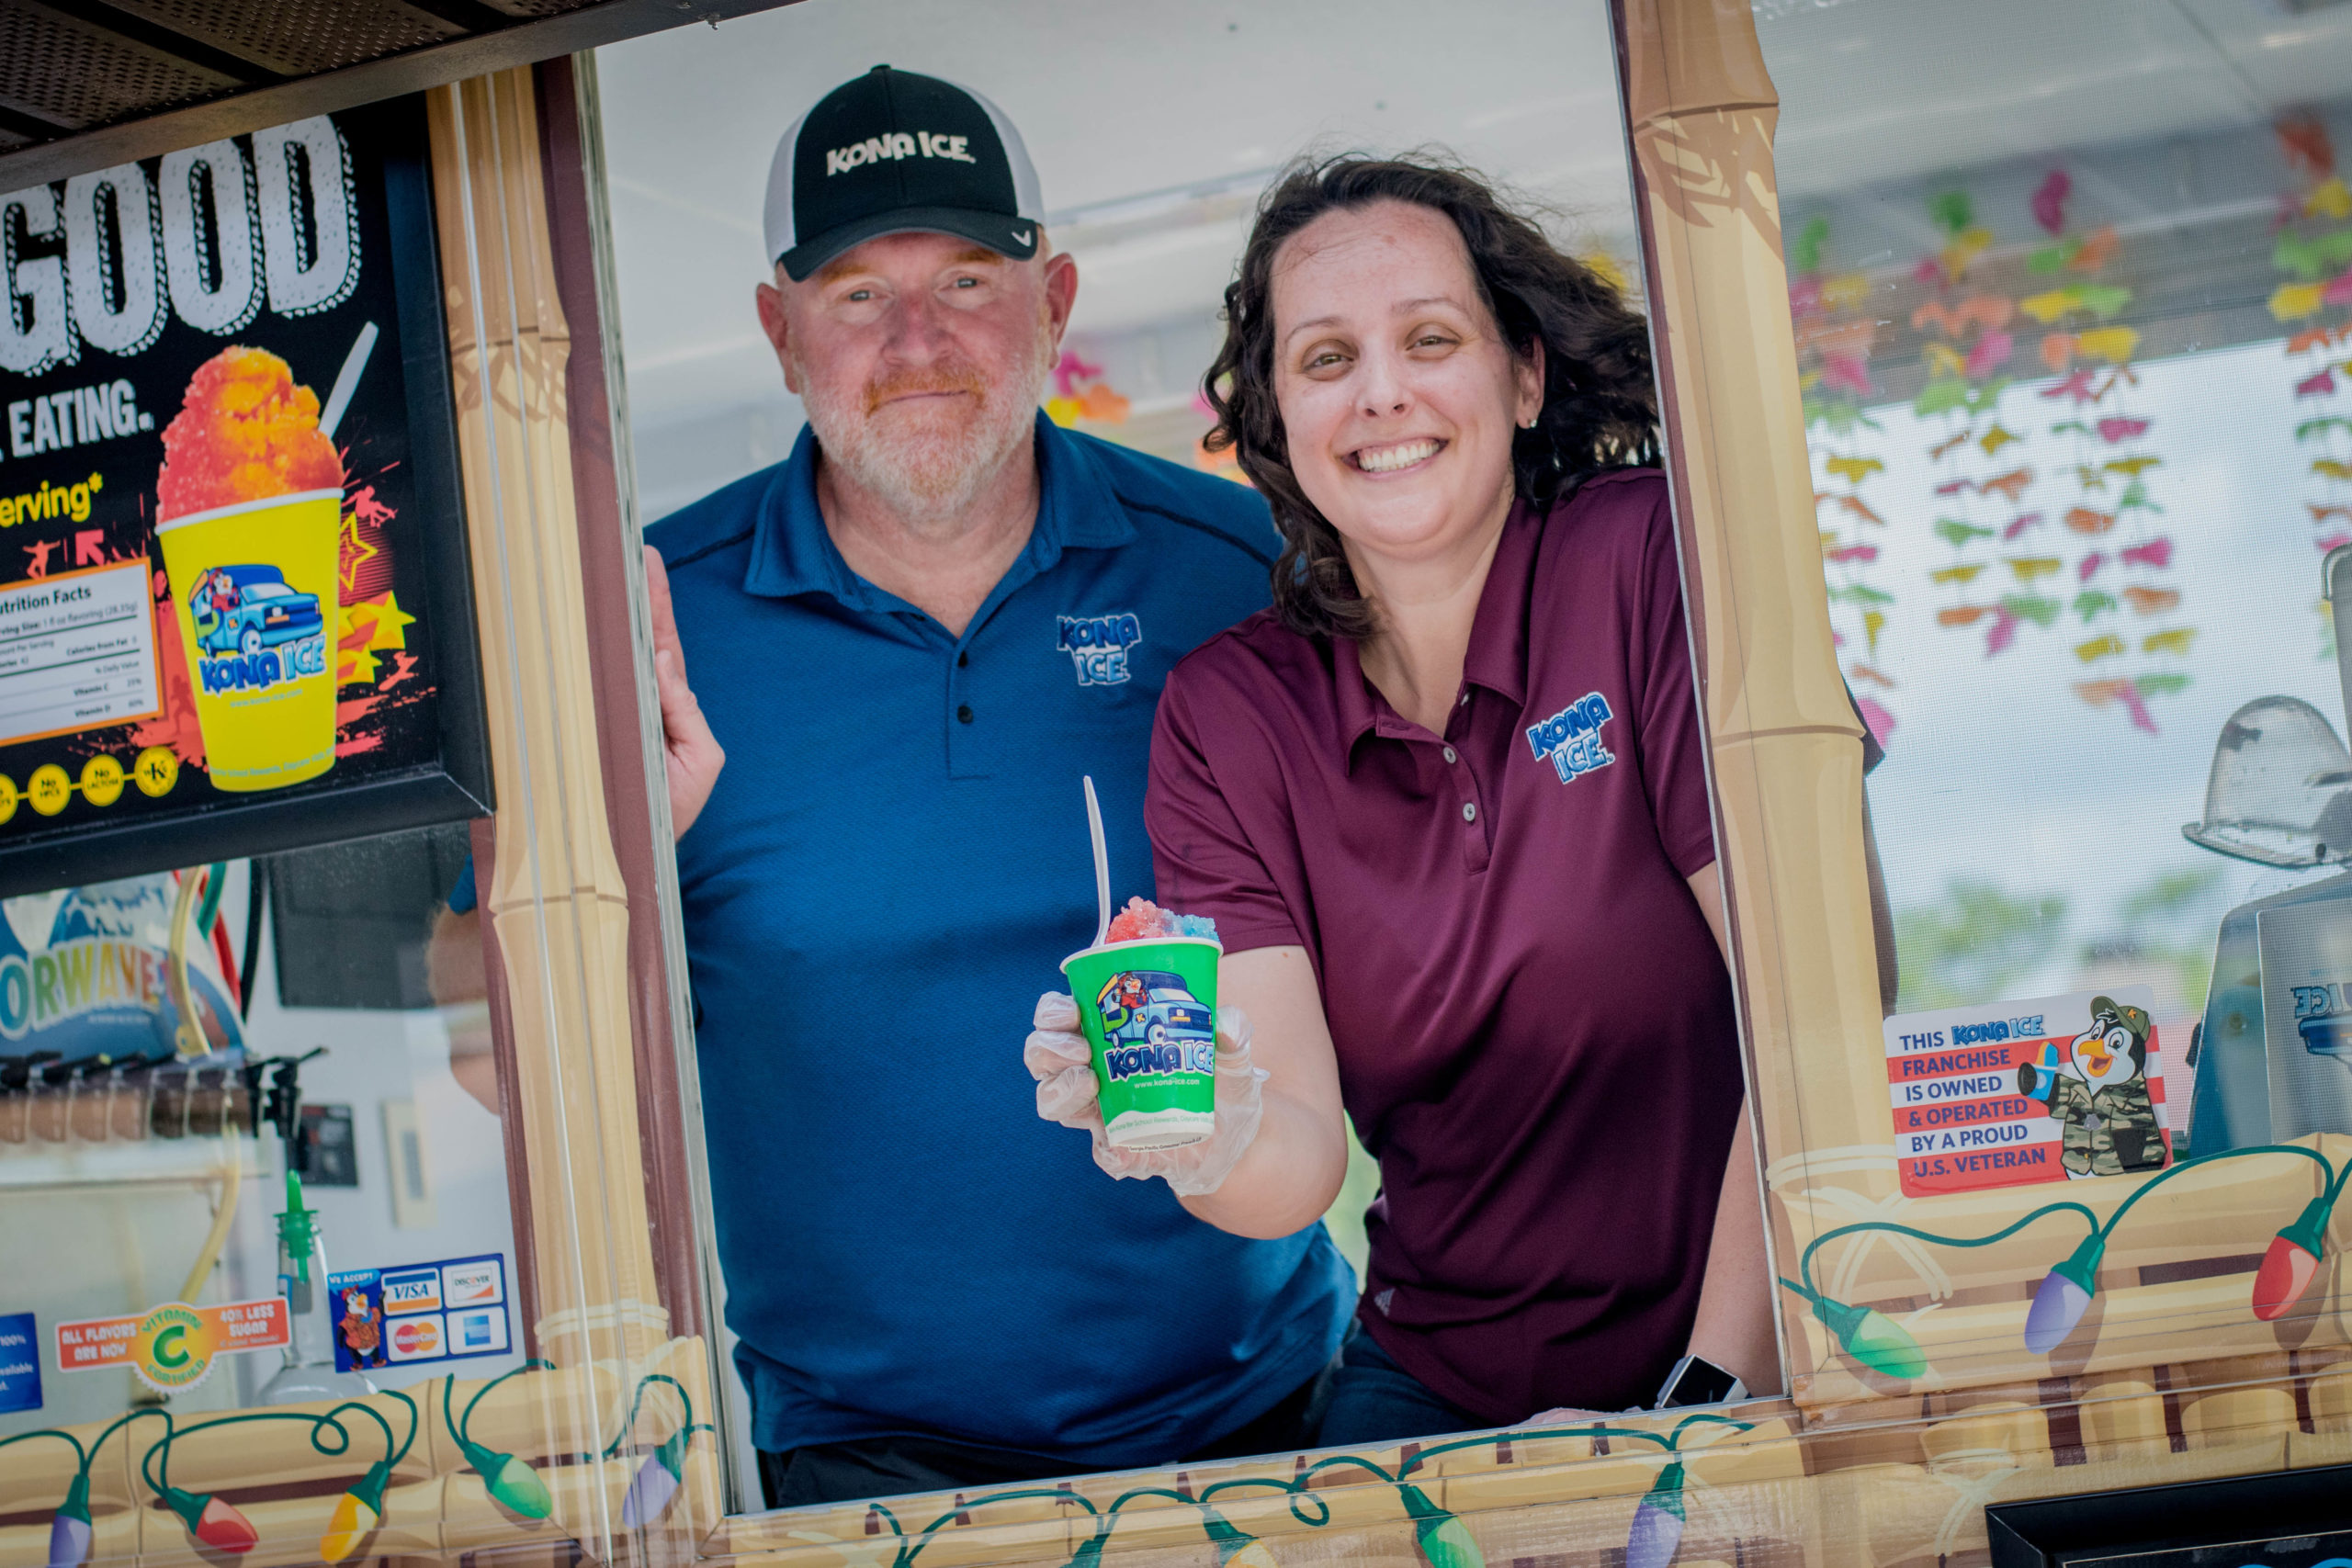 Slagle and Minton pictured in the window of the Kona Ice truck.